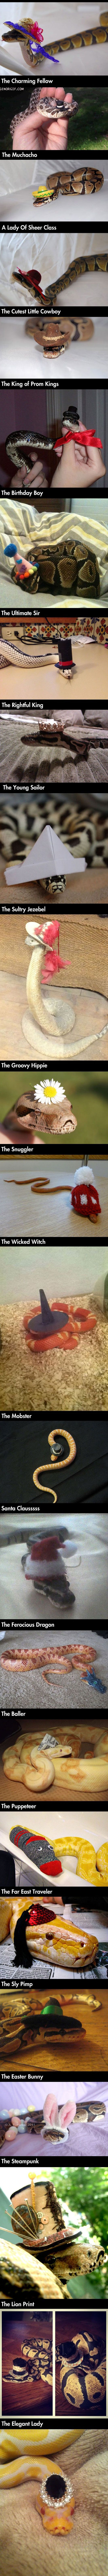 joindarkside » Snakes In Hats! (26 Pics)